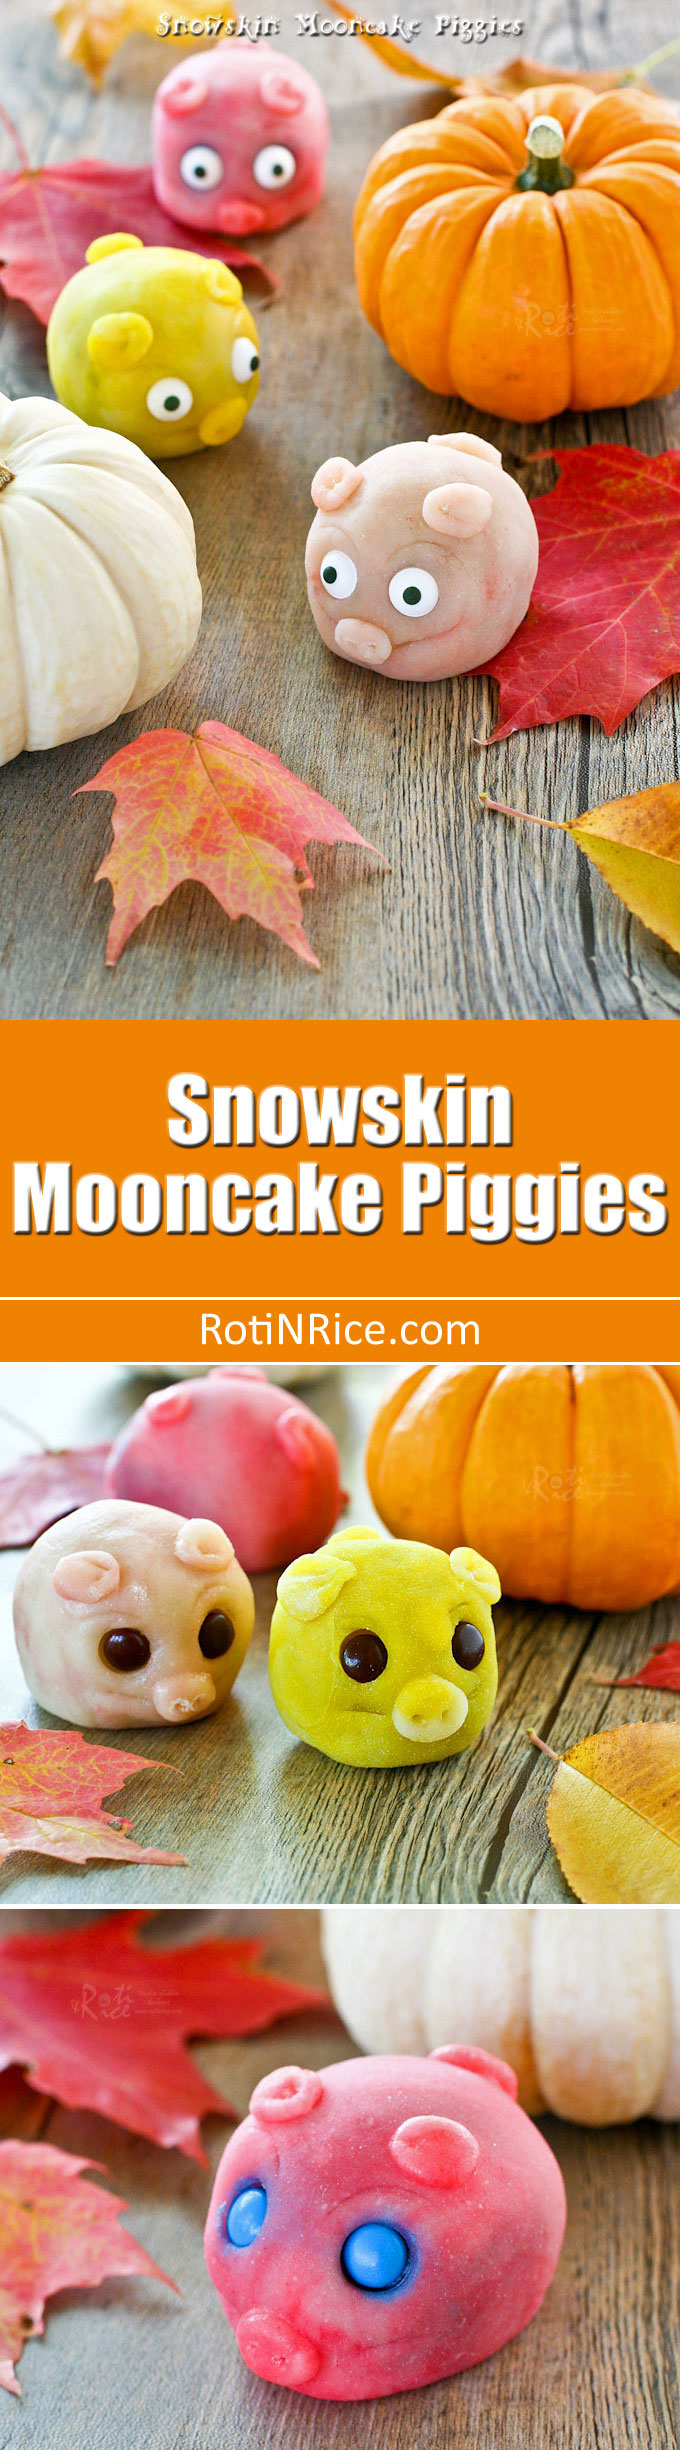 Delightful gluten free Snowskin Mooncake Piggies with lotus seed and red bean paste filling for the Mid-Autumn or Mooncake Festival. | RotiNRice.com